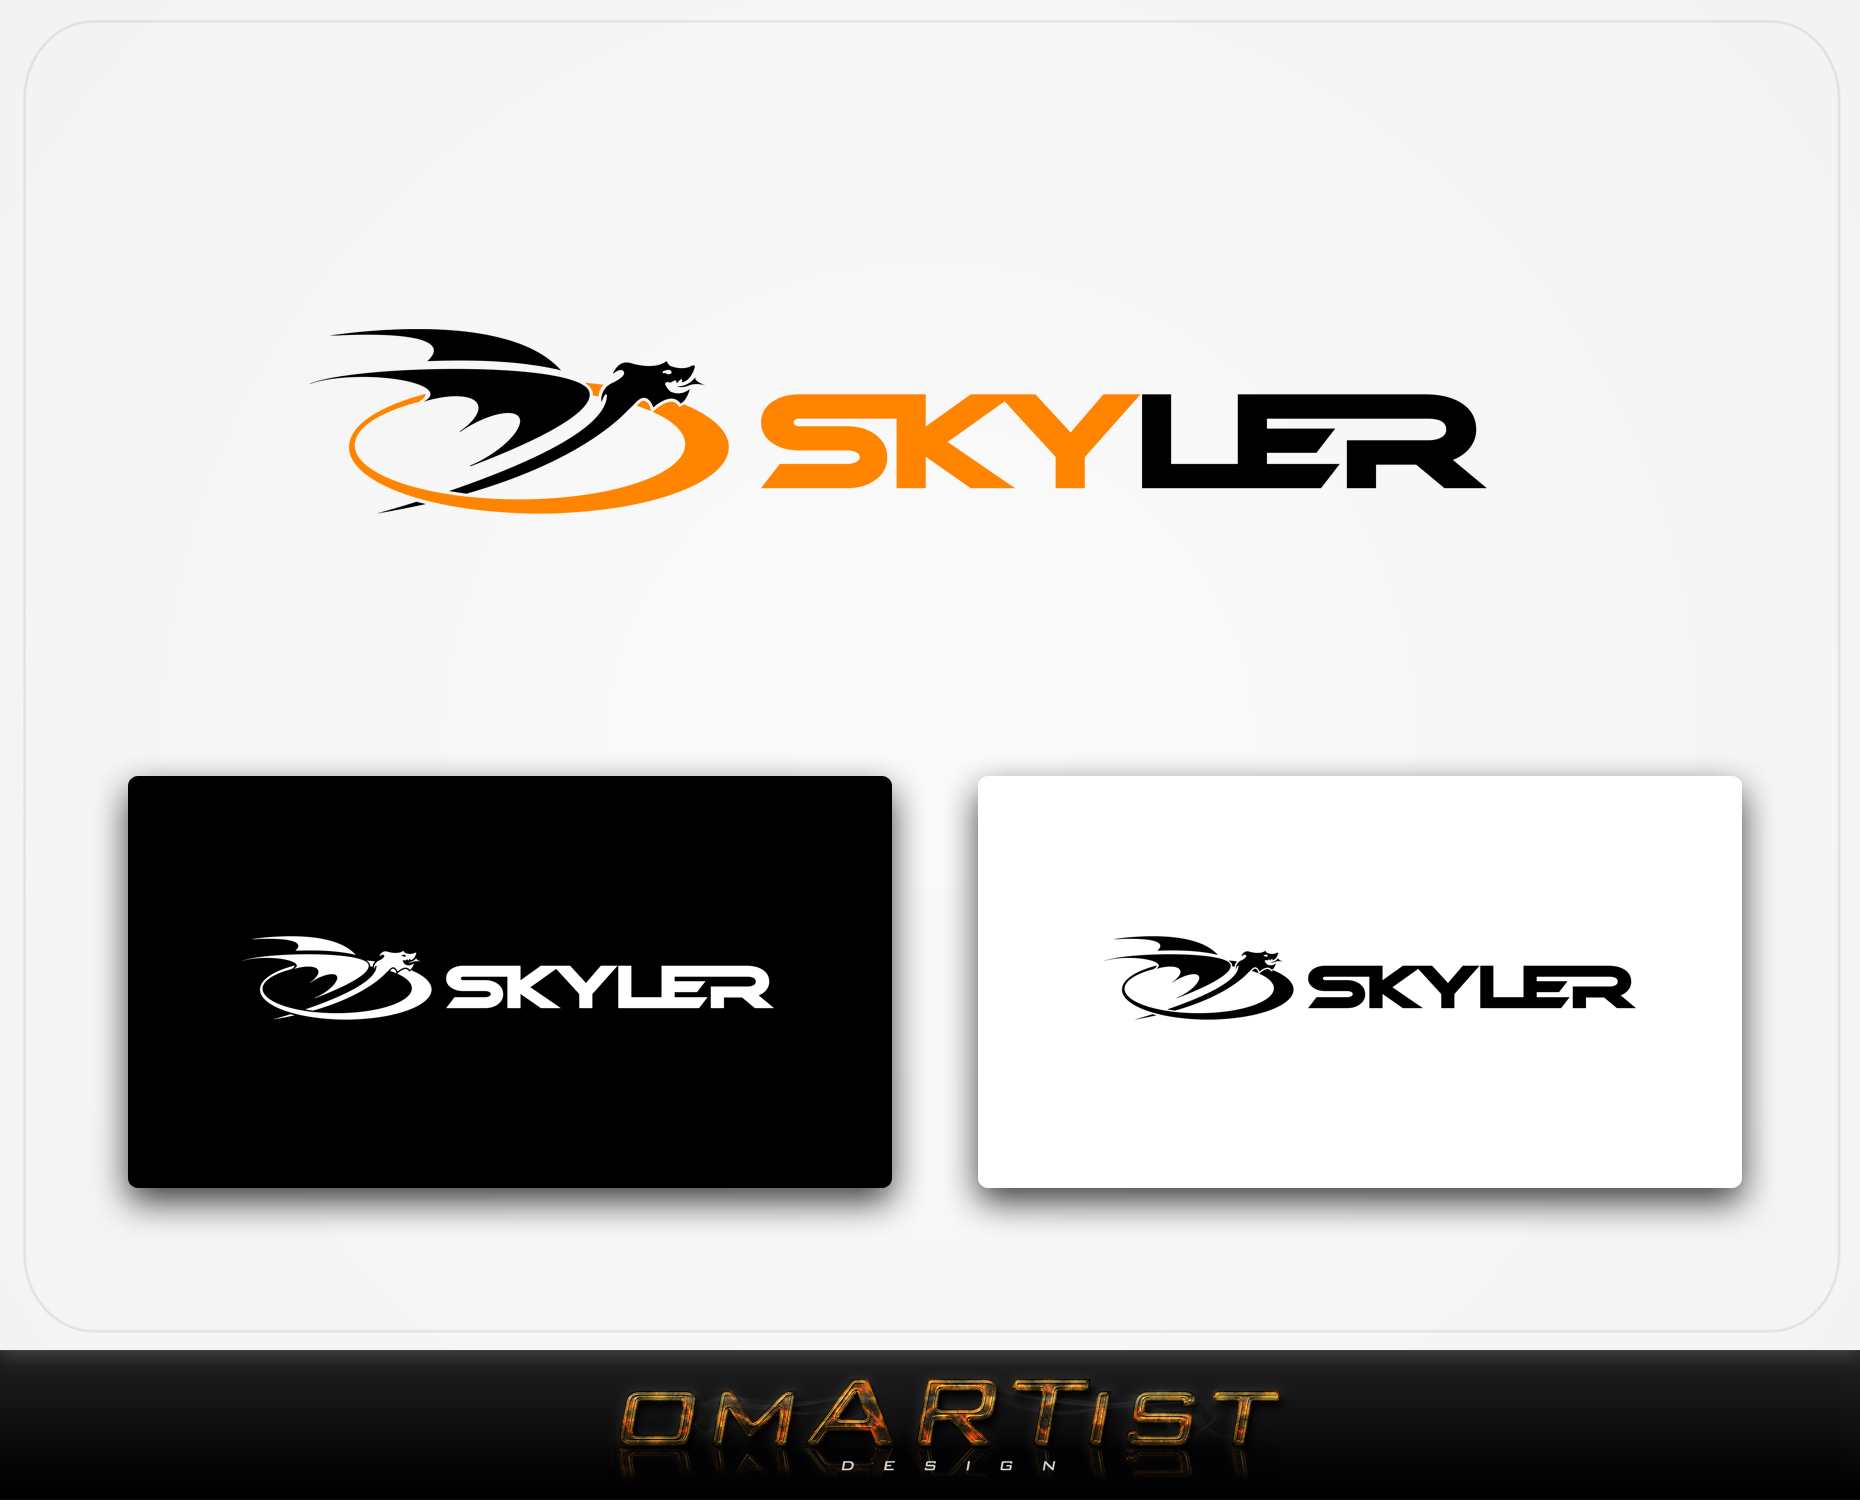 Logo Design by omARTist - Entry No. 215 in the Logo Design Contest Artistic Logo Design for Skyler.Asia.